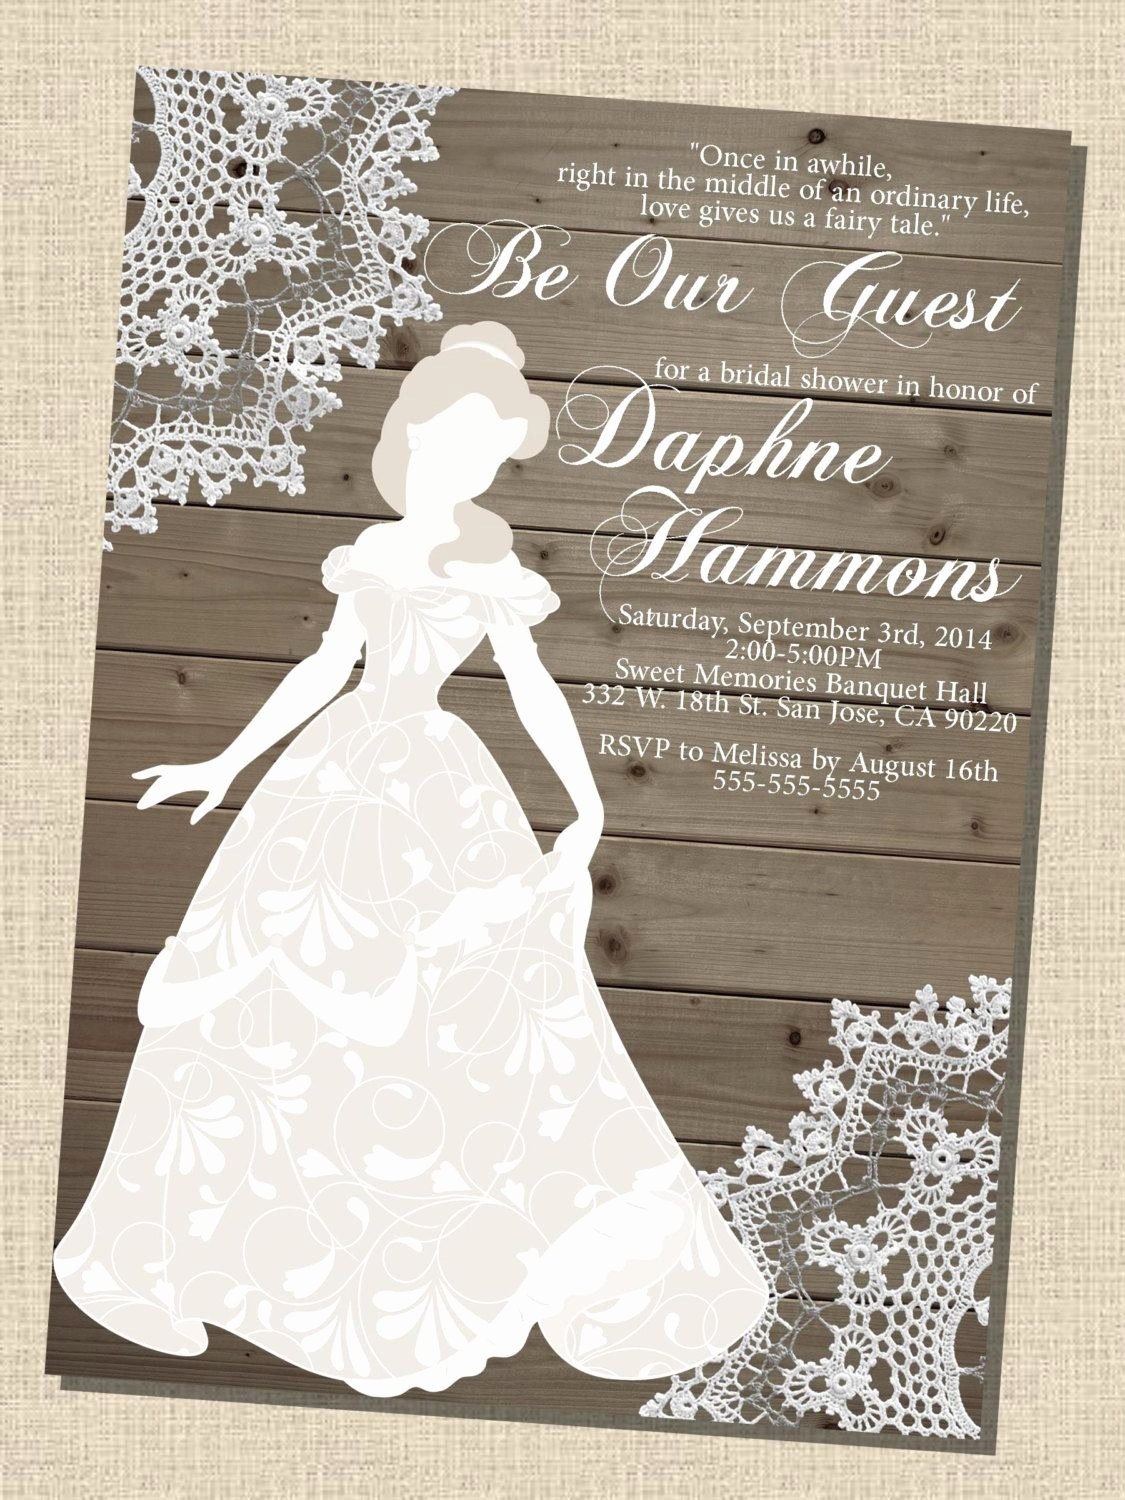 Disney Bridal Shower Invitations Lovely Rustic Wooden Vintage Disney Princess Belle Silhouette Bridal Shower Invitation 5x7